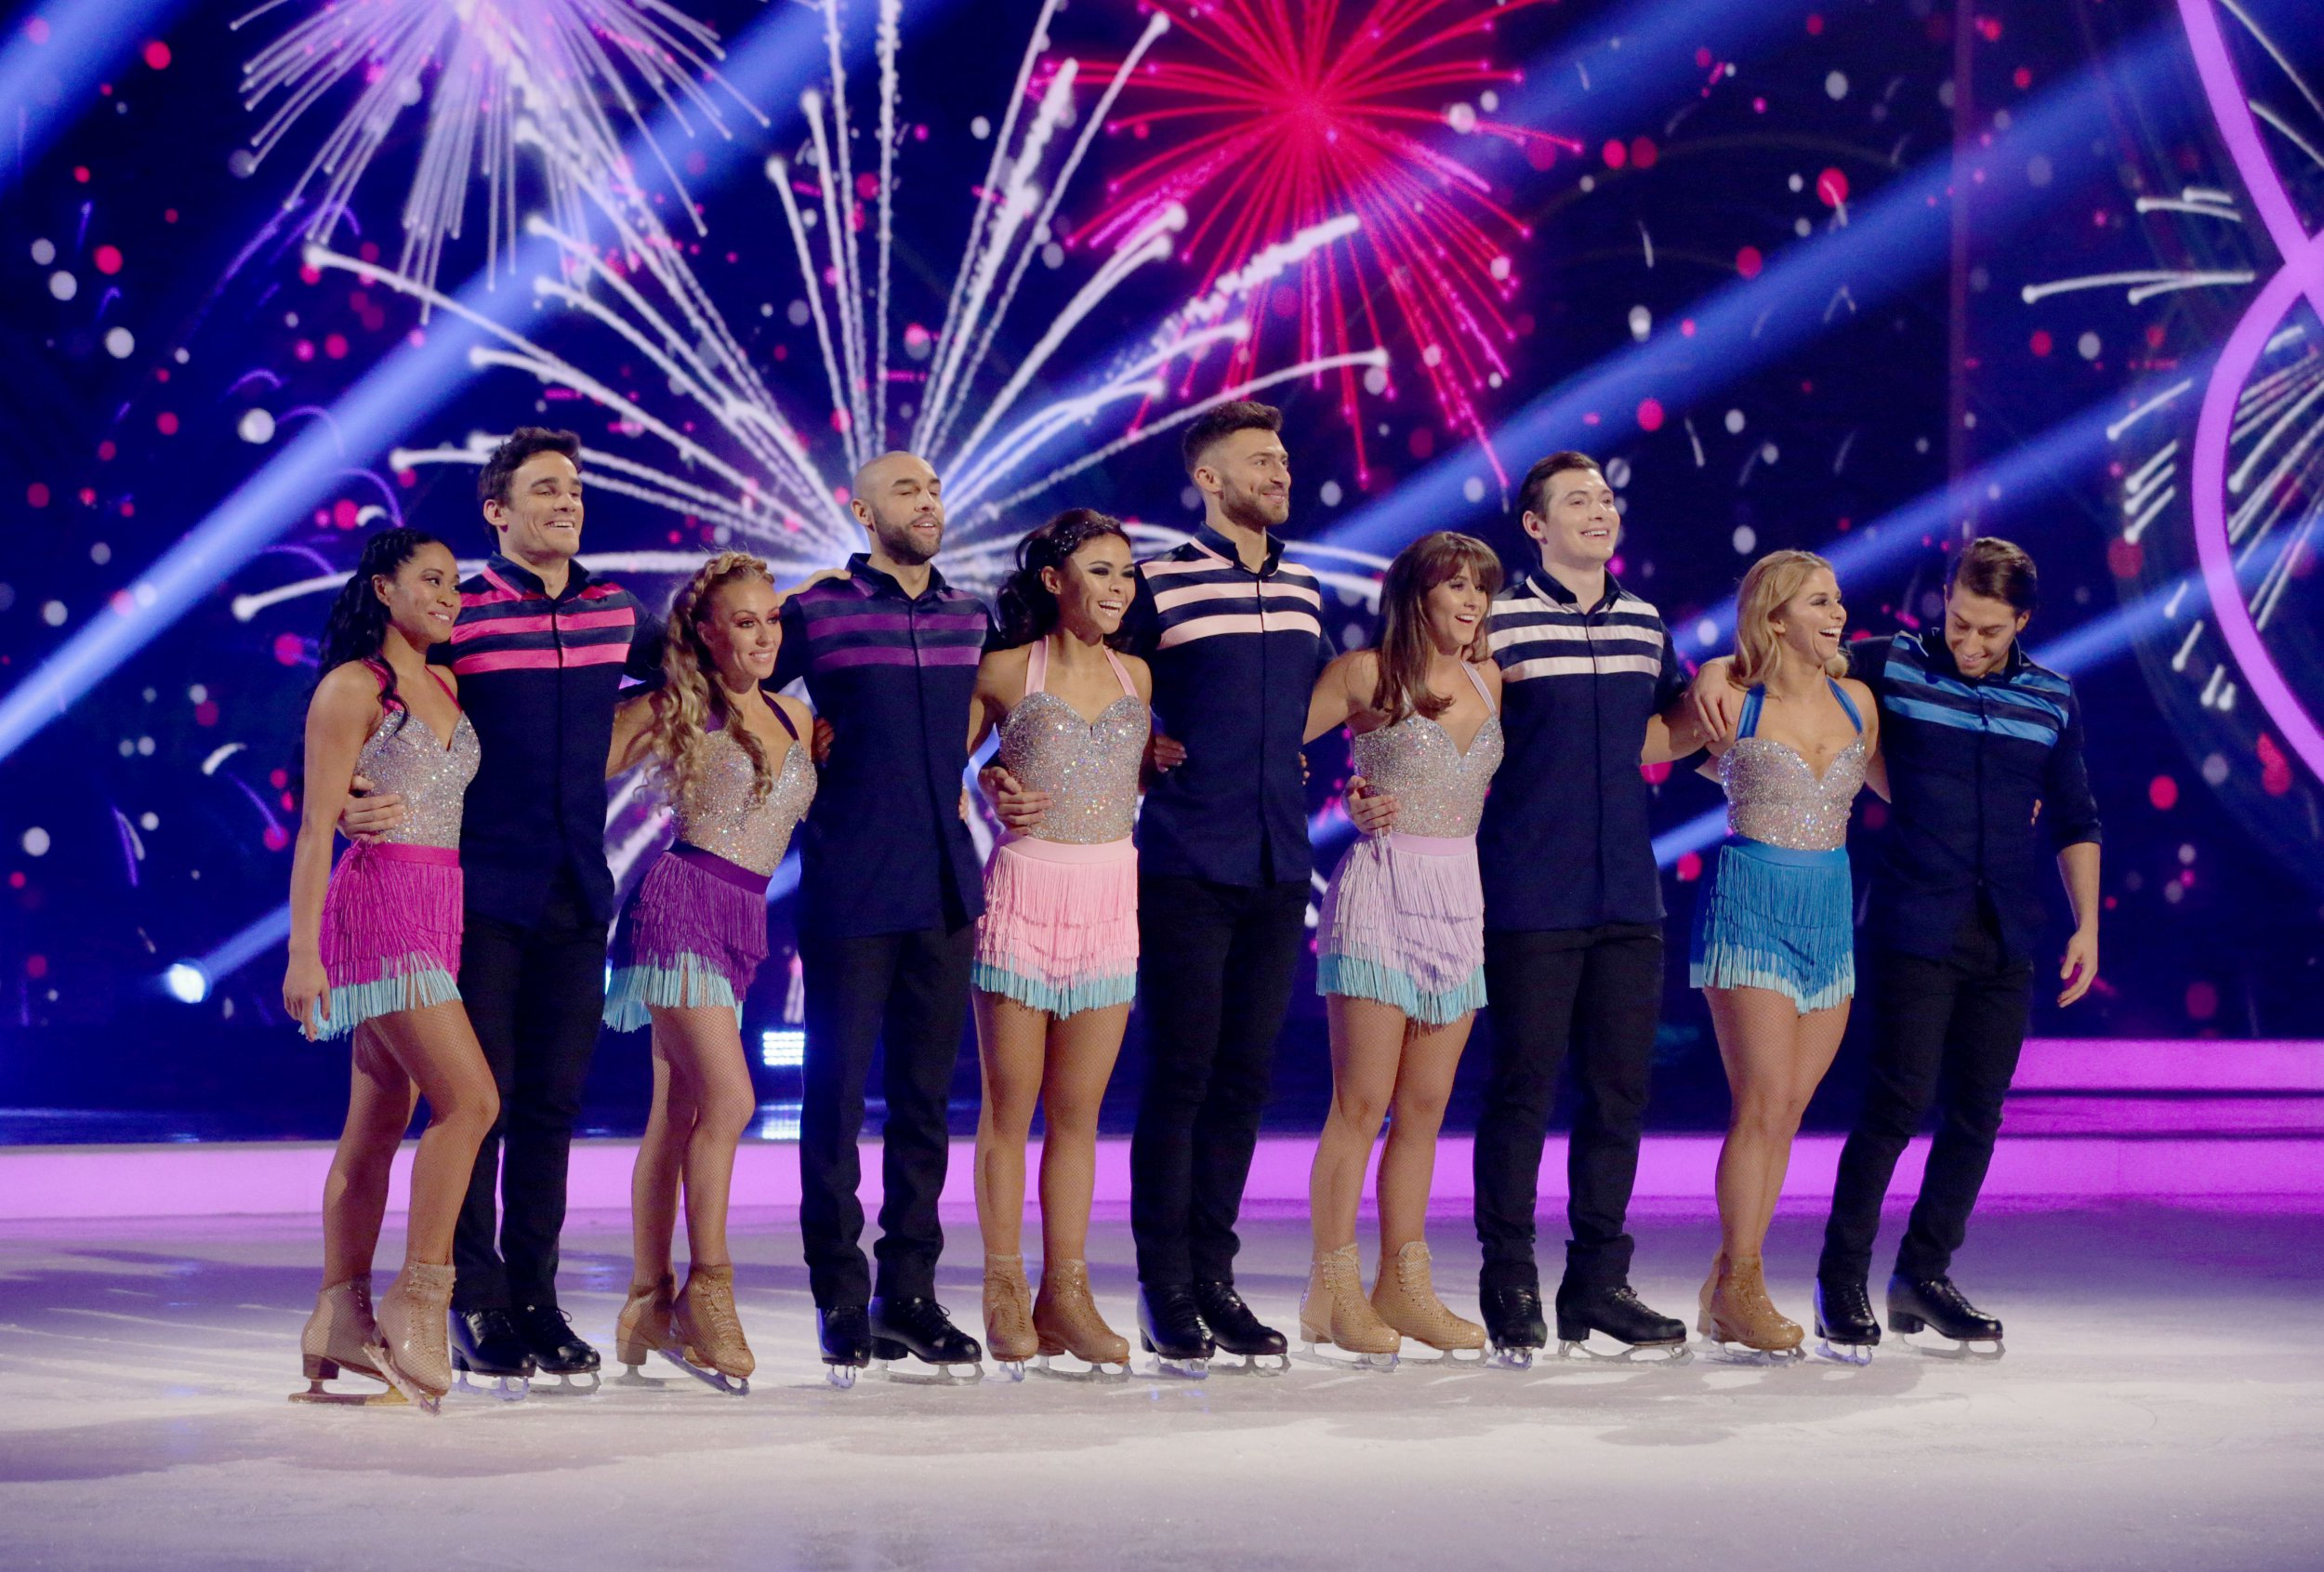 Editorial use only Mandatory Credit: Photo by Matt Frost/ITV/REX/Shutterstock (9436612hy) Max Evans and Brandee Malto, Alex Beresford and Brianne Delcourt, Jake Quickenden and Vanessa Bauer, Brooke Vincent and Matej Silecky, Kem Cetinay and Alex Murphy, Relay Skate 'Dancing on Ice' TV show, Series 10, Episode 8, Hertfordshire, UK - 25 Feb 2018